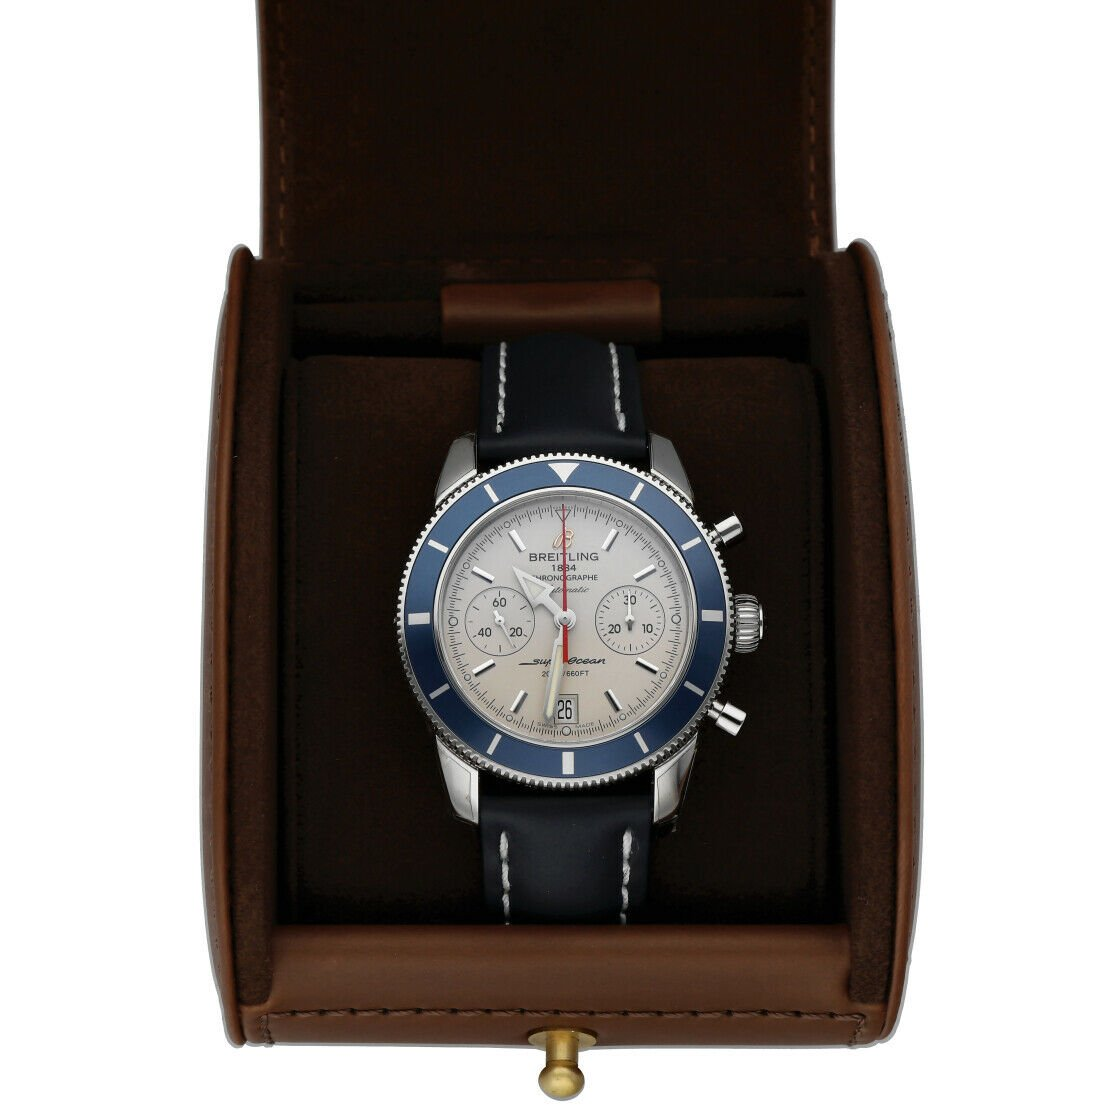 Breitling A23370 Superocean Heritage 44 Silver Chrono Leather Auto Mens Watch 114428920667 8